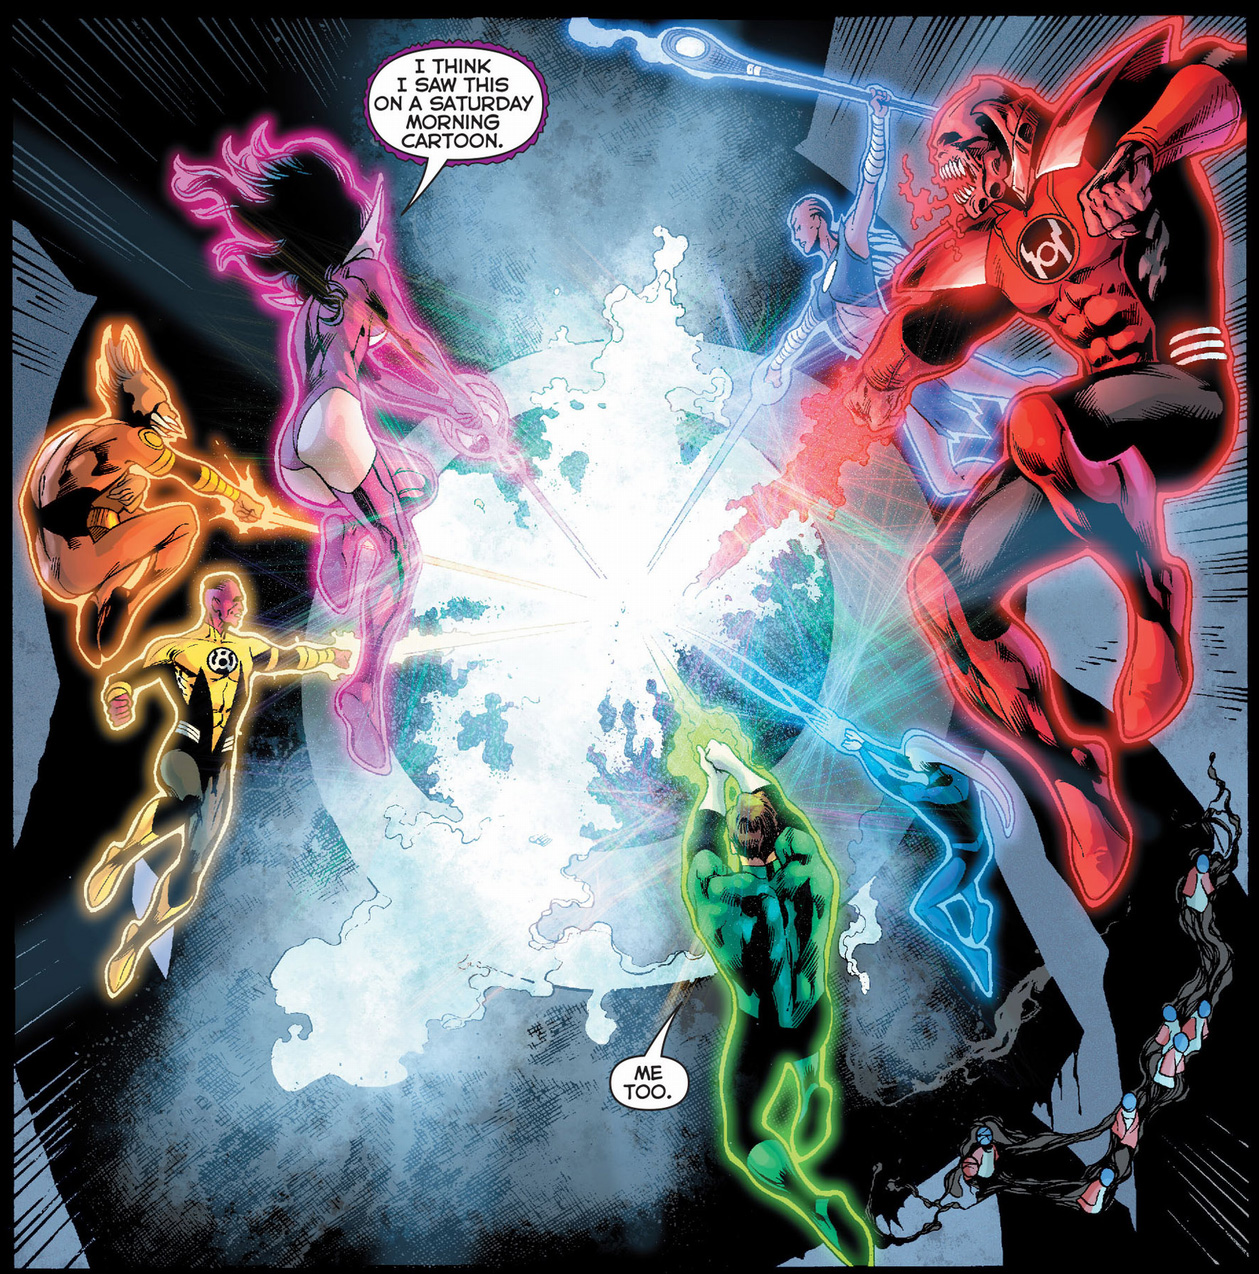 the 7 lantern corps attacks the black battery